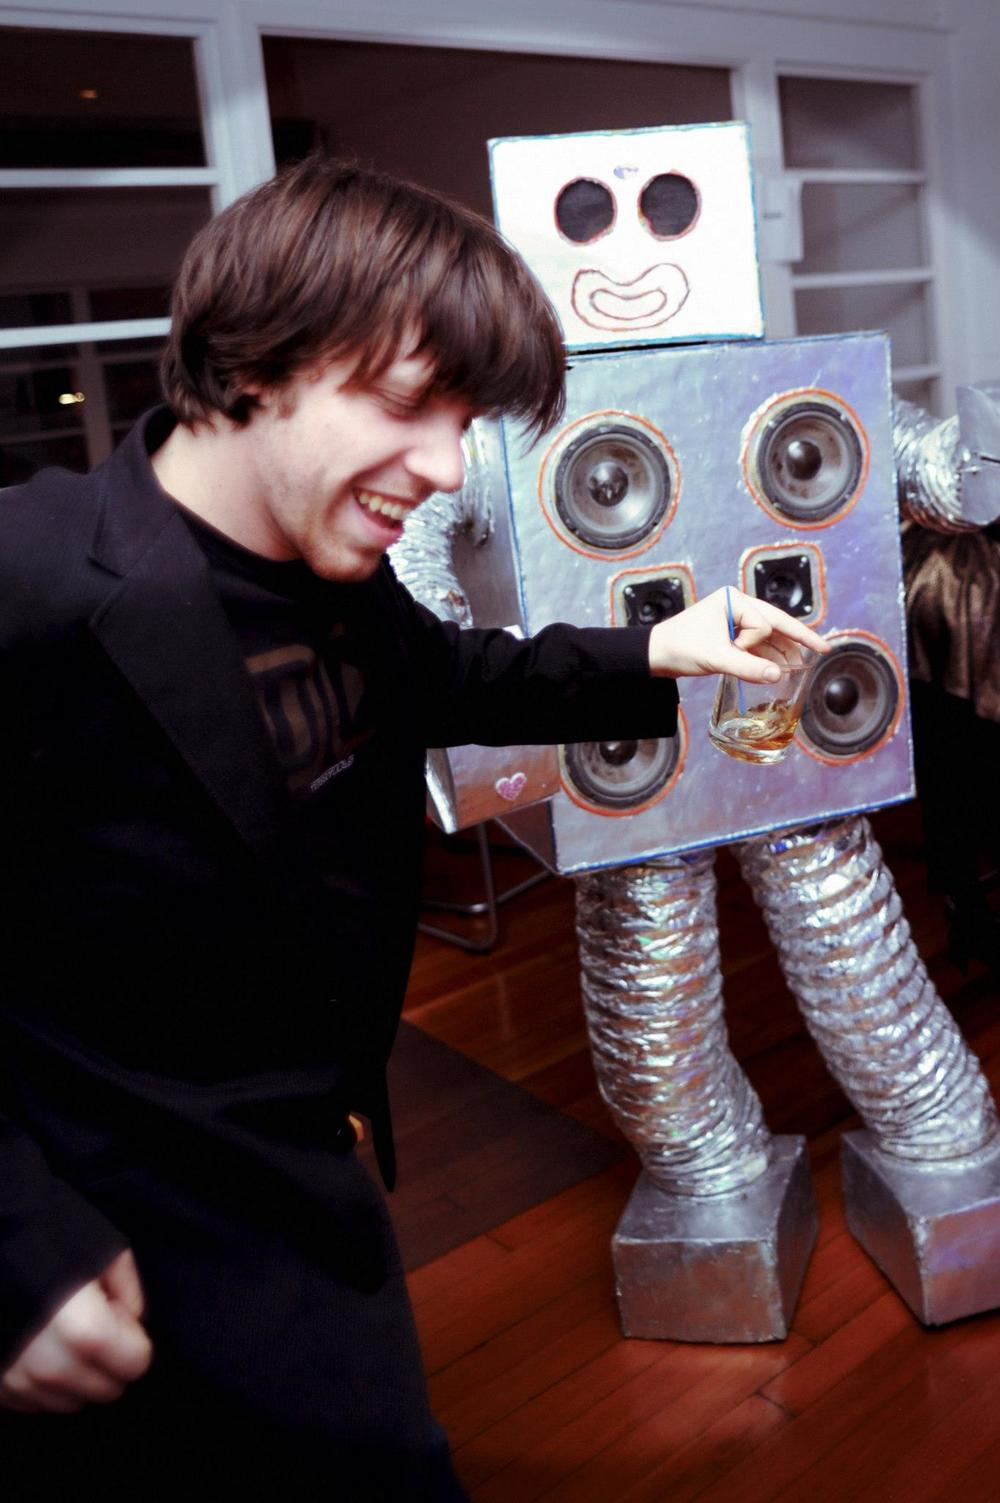 dj-spacecamp-and-dance-party-robot.jpg